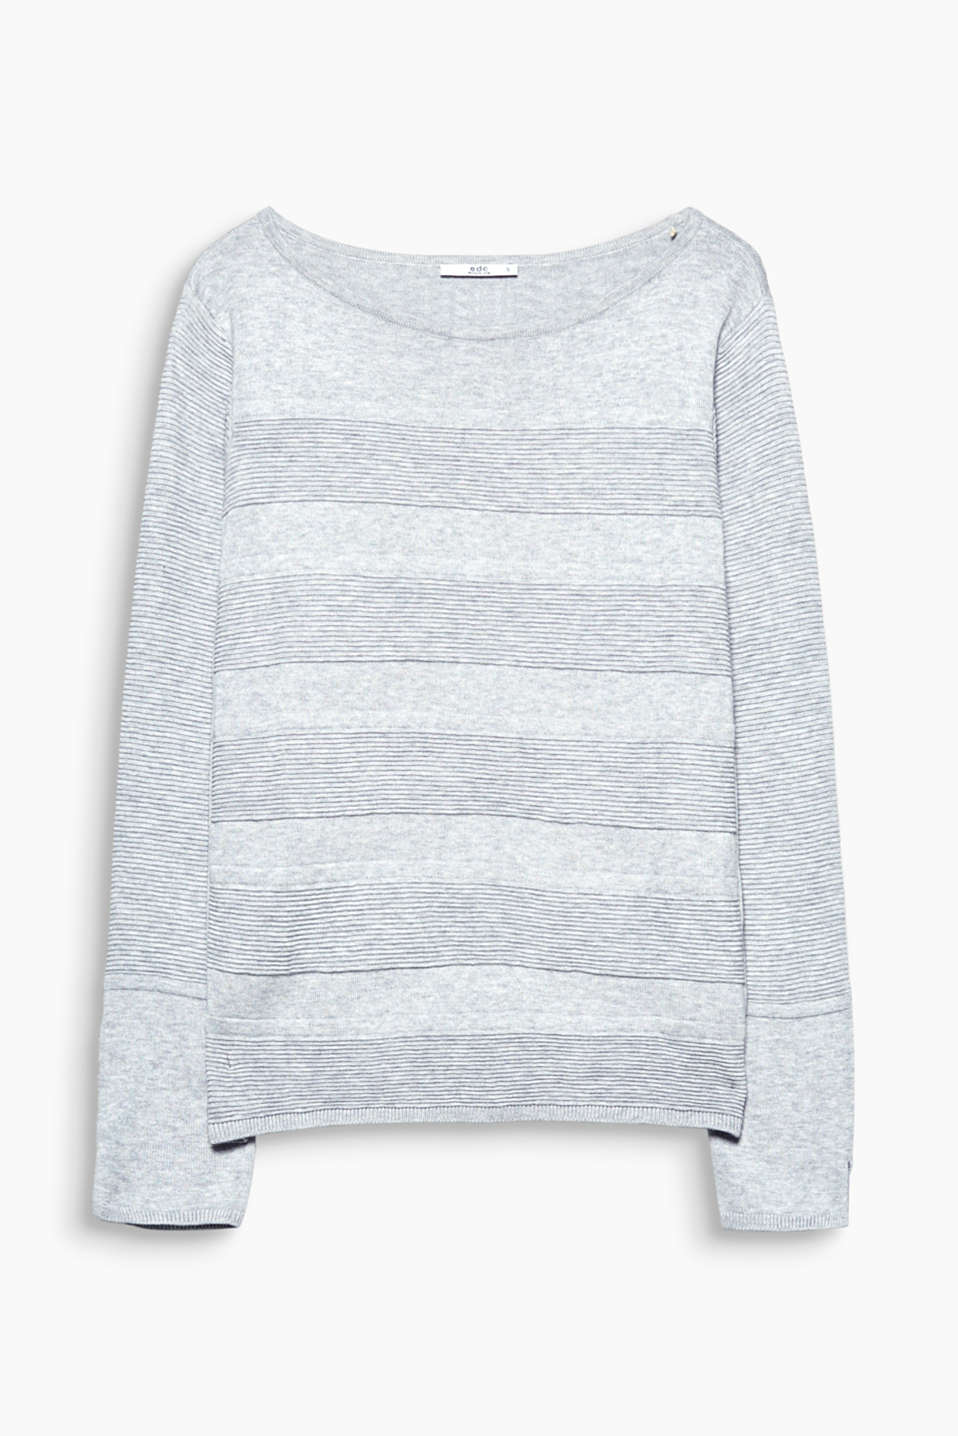 The textured, ribbed block stripes give this cool, blended cotton jumper its brand new look!